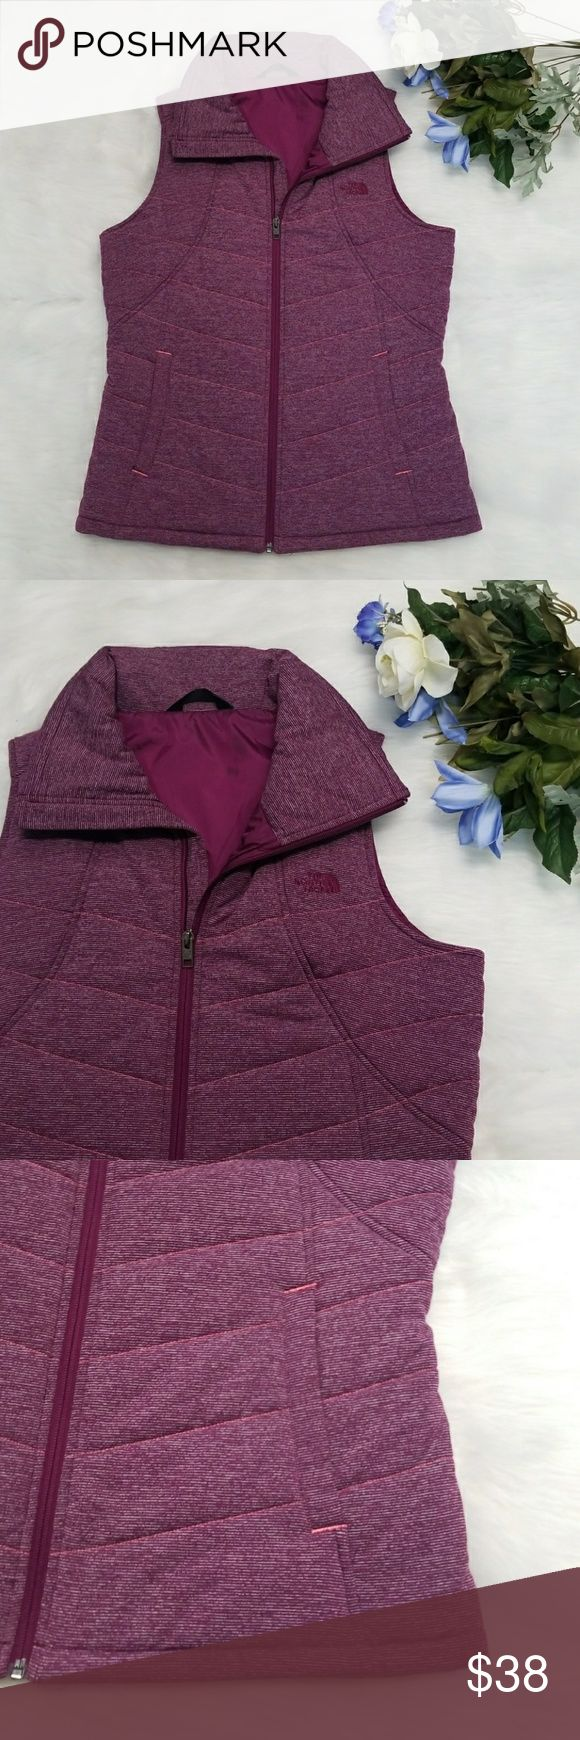 The North Face Puffer Vest Excellent condition purple quilted puffer vest by the North face. Collared, zippered front, two side pockets The North Face Jackets & Coats Vests